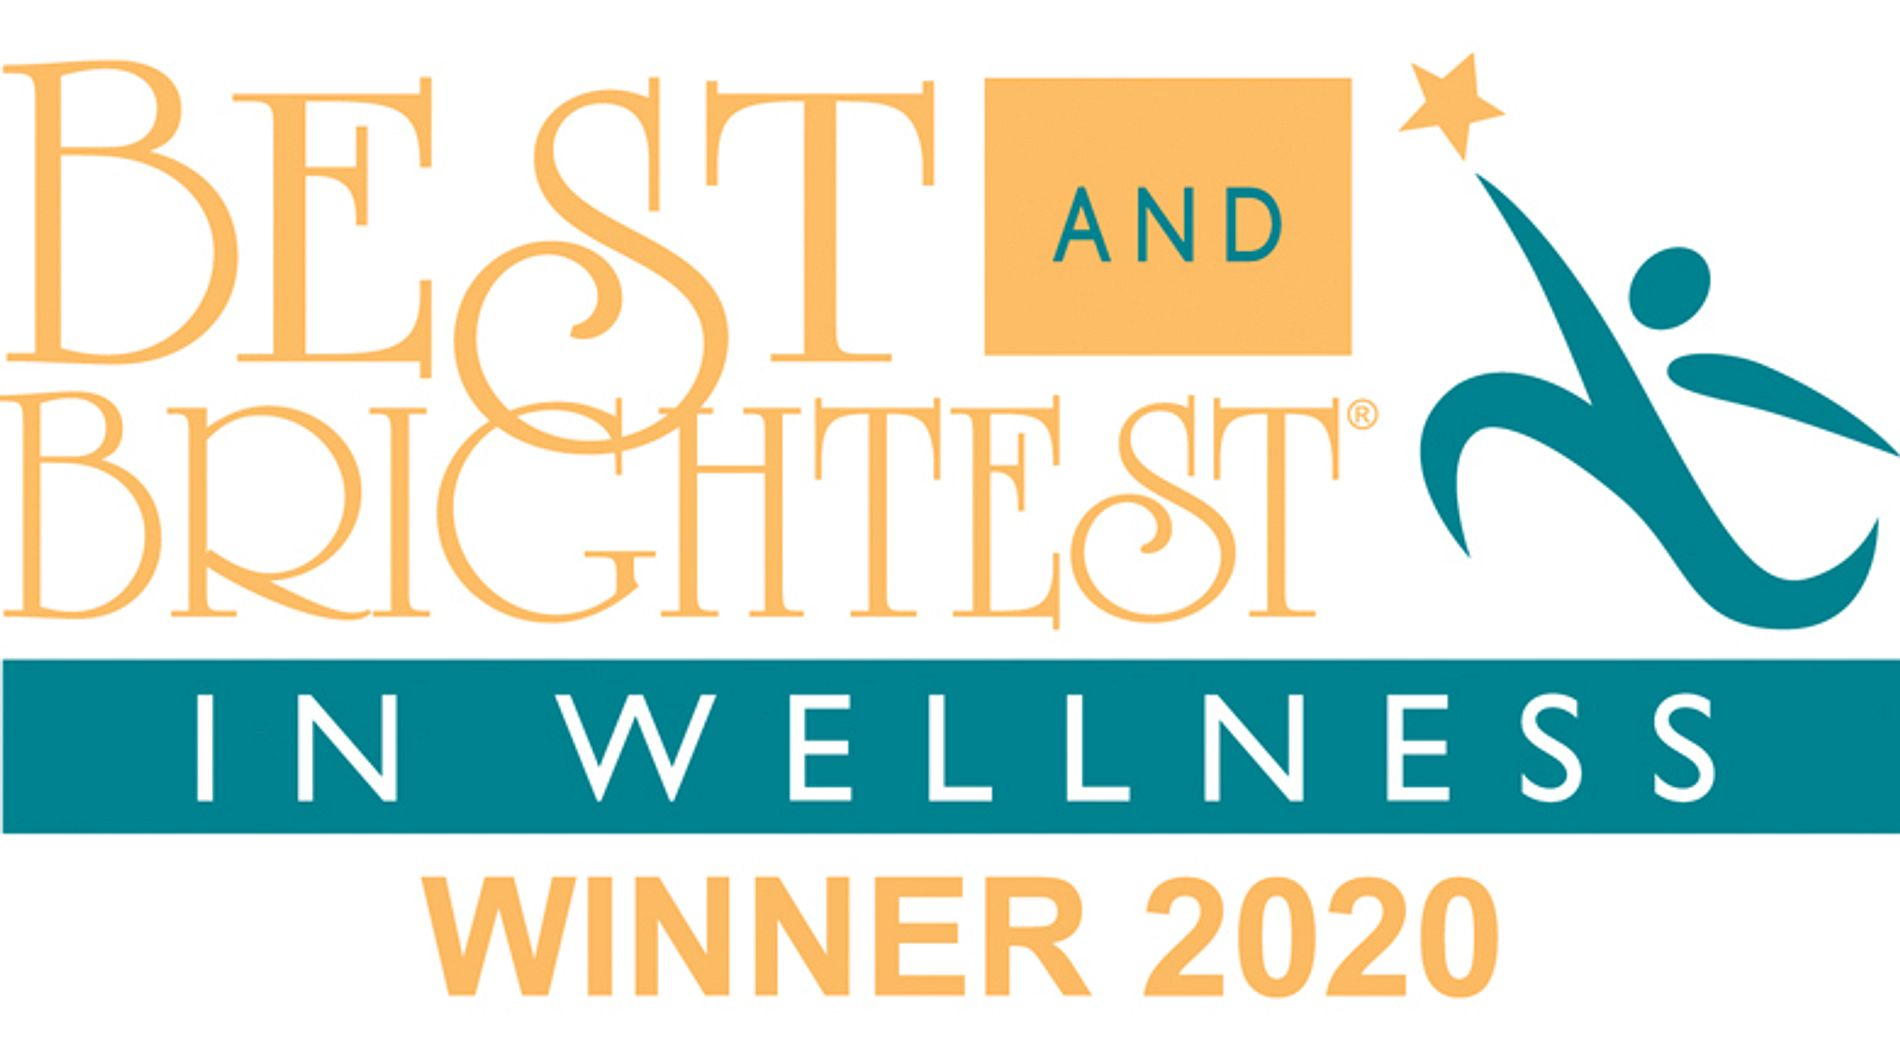 Best and Brightest in Wellness Awards Program